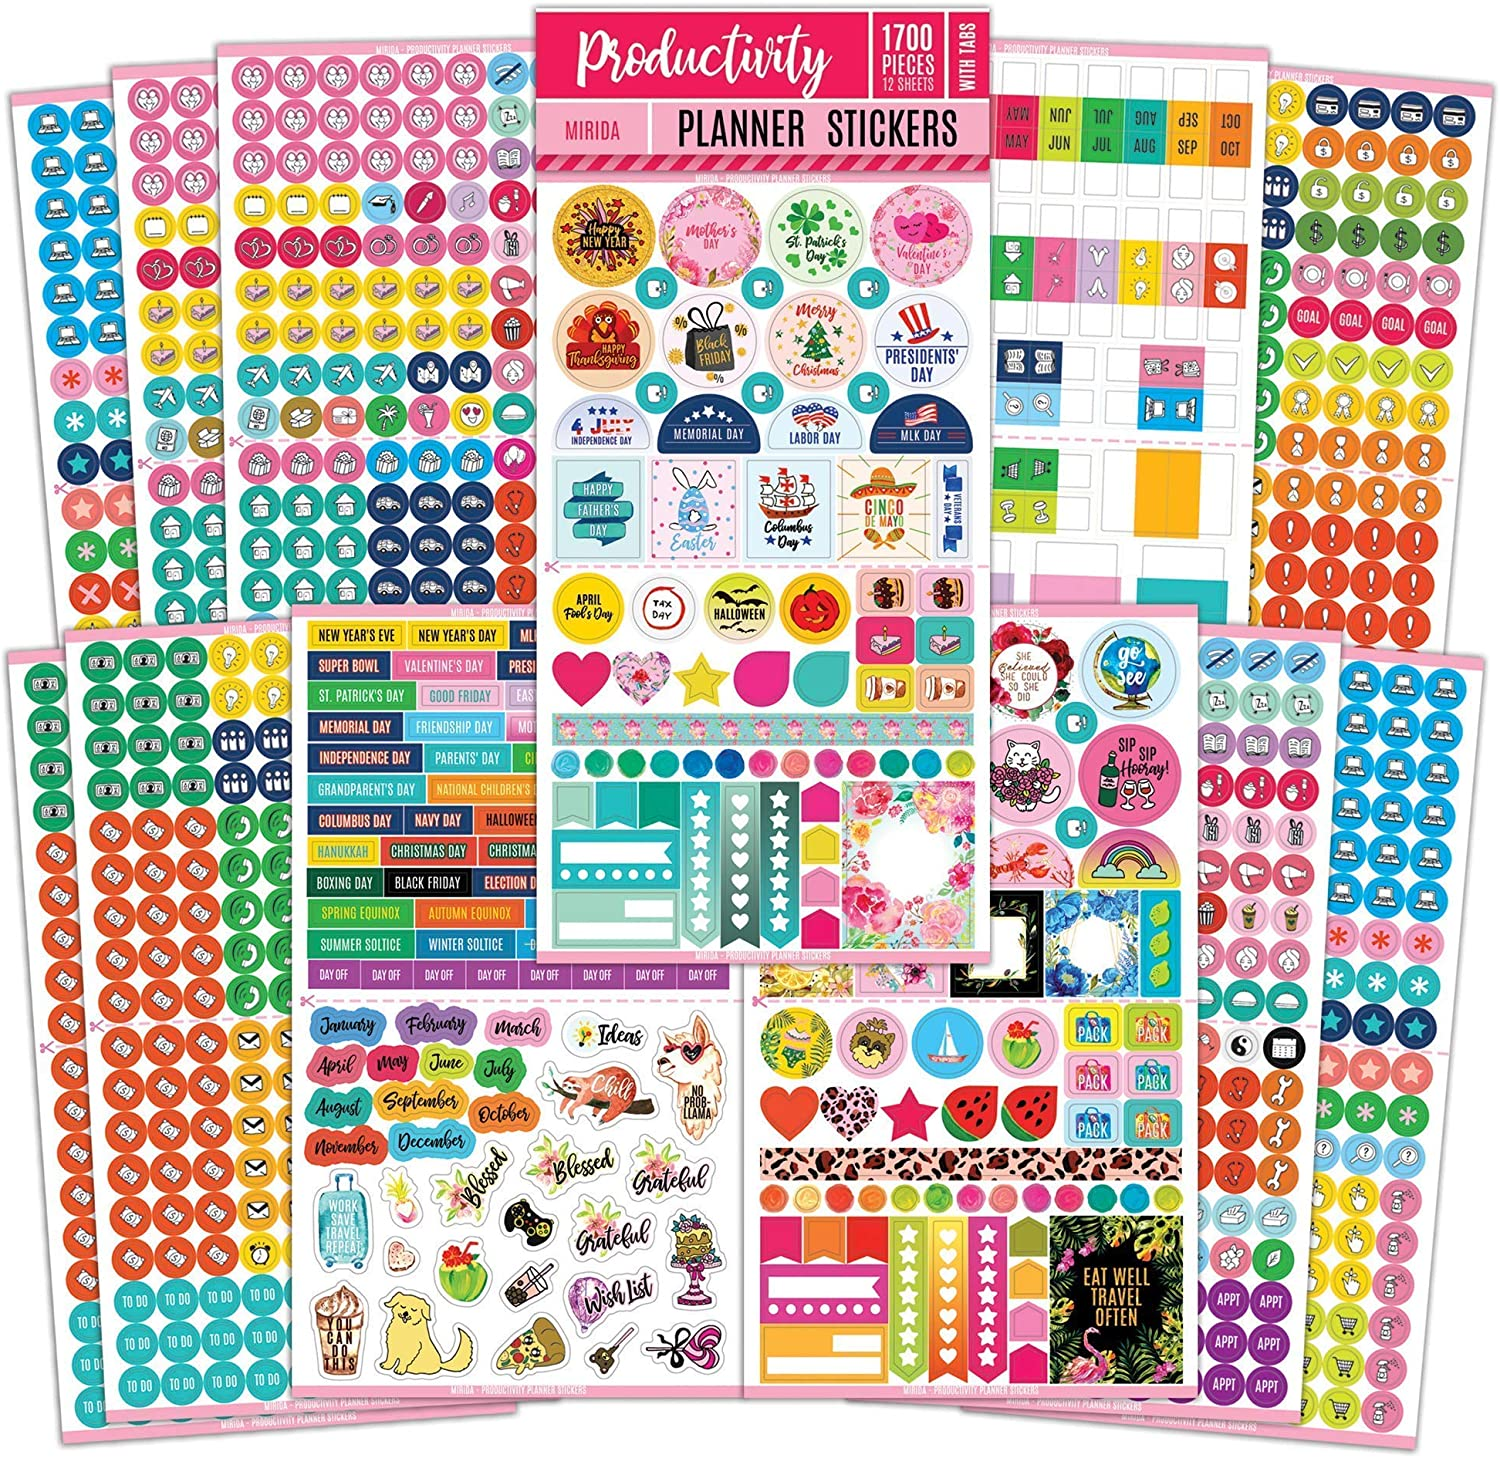 Mirida Planner Stickers – 1700 Productivity Mini Icons for Adults Calendar – Work, Daily to Do, Budget, Family, Holidays, Journaling – Variety Pack with Monthly Tabs